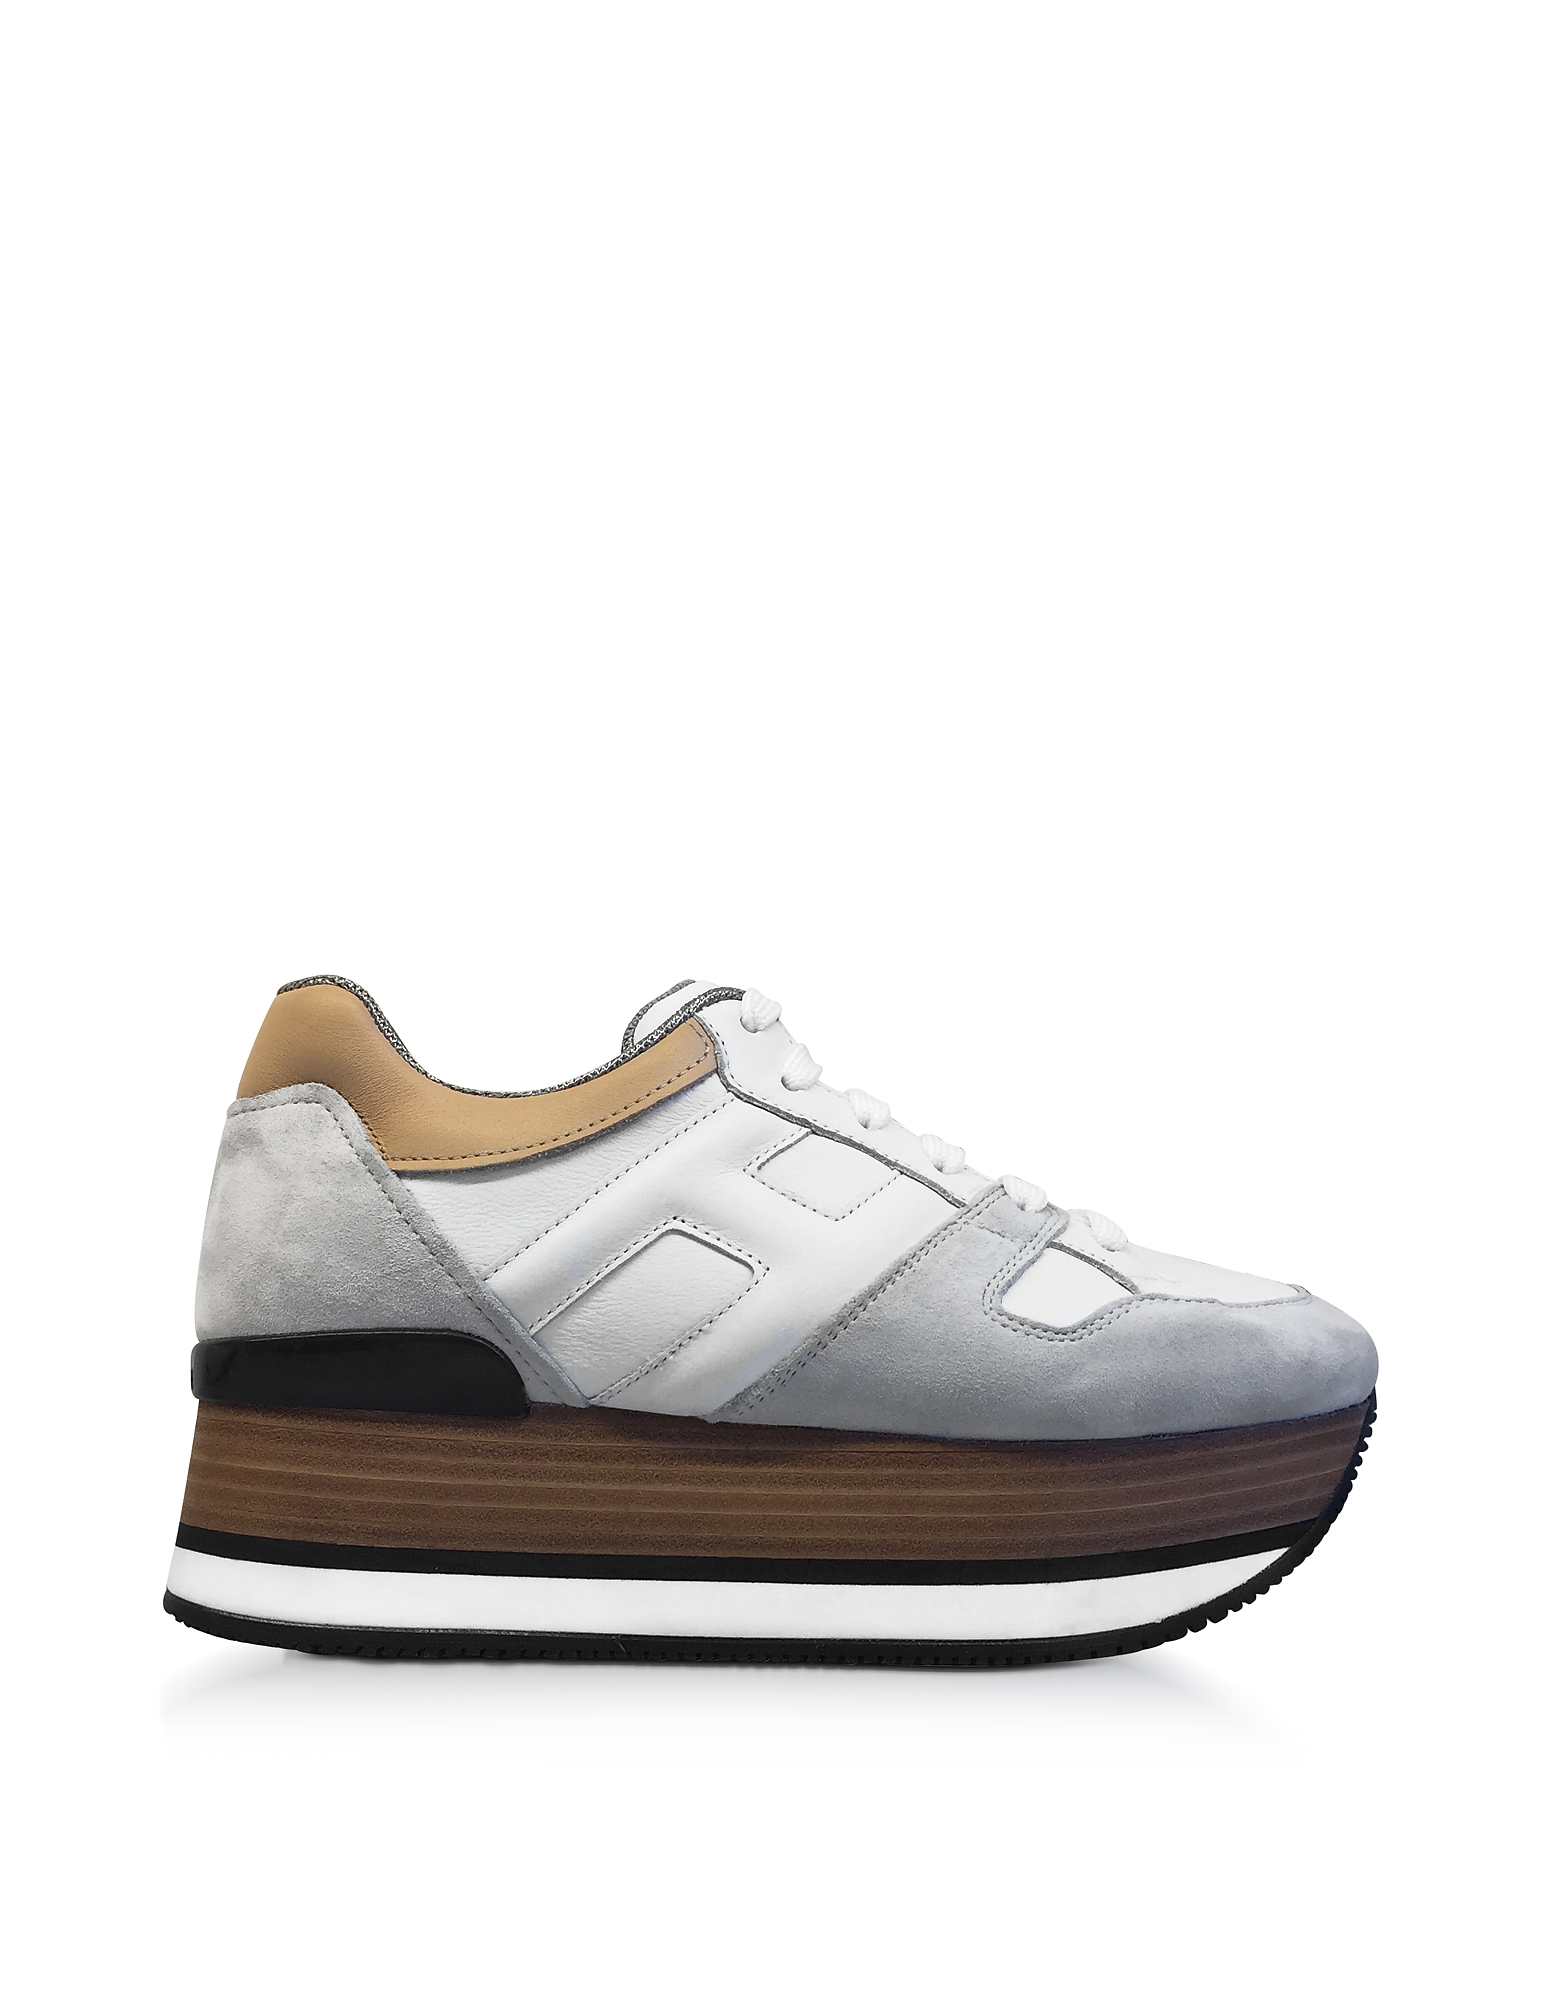 Hogan Shoes, Maxi H222 Suede and Leather Ultra-light Wood-Effect Flatform Sneakers